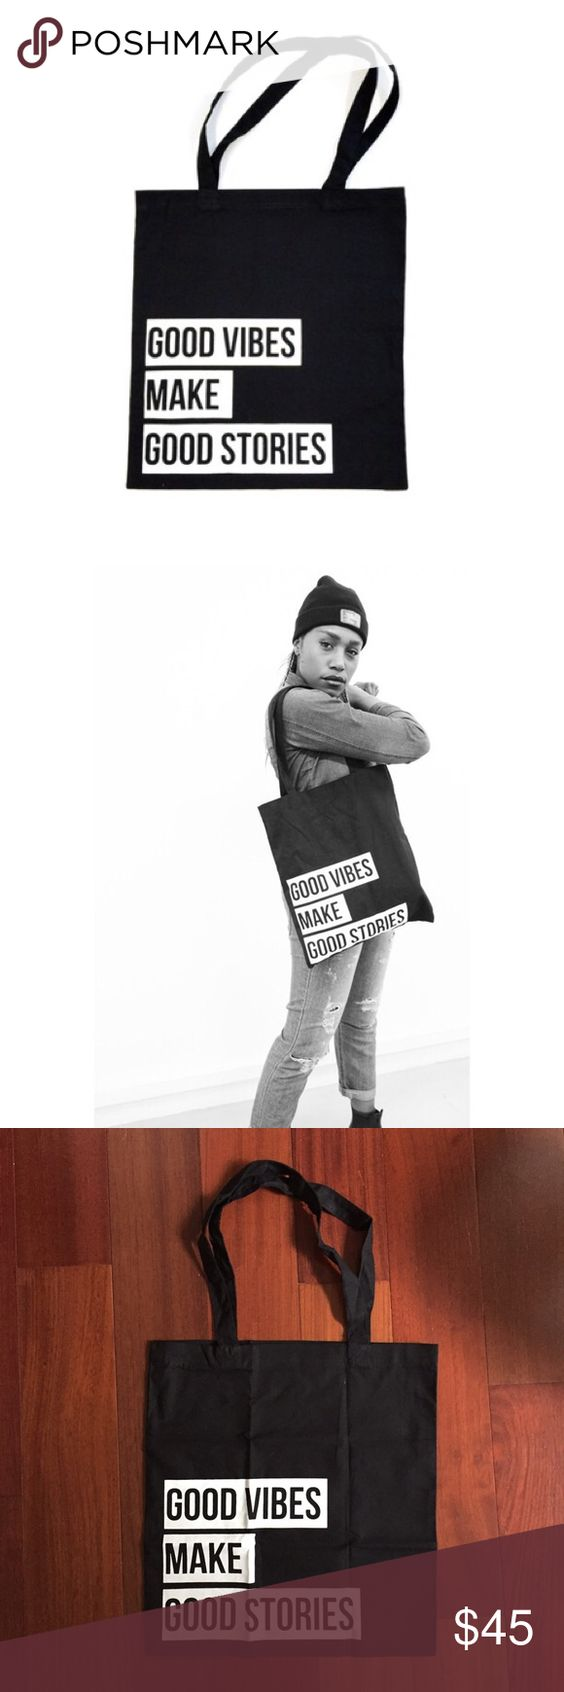 GVMGS Screen Print Black Canvas Tote bag GVMGS (Good Vibes Make Good Stories) is a Streetwear boutique from Switzerland. This is a black tote bag with their signature phrase printed. Super Limited Edition and sold out online! Comes with original packaging. GVMGS Bags Totes